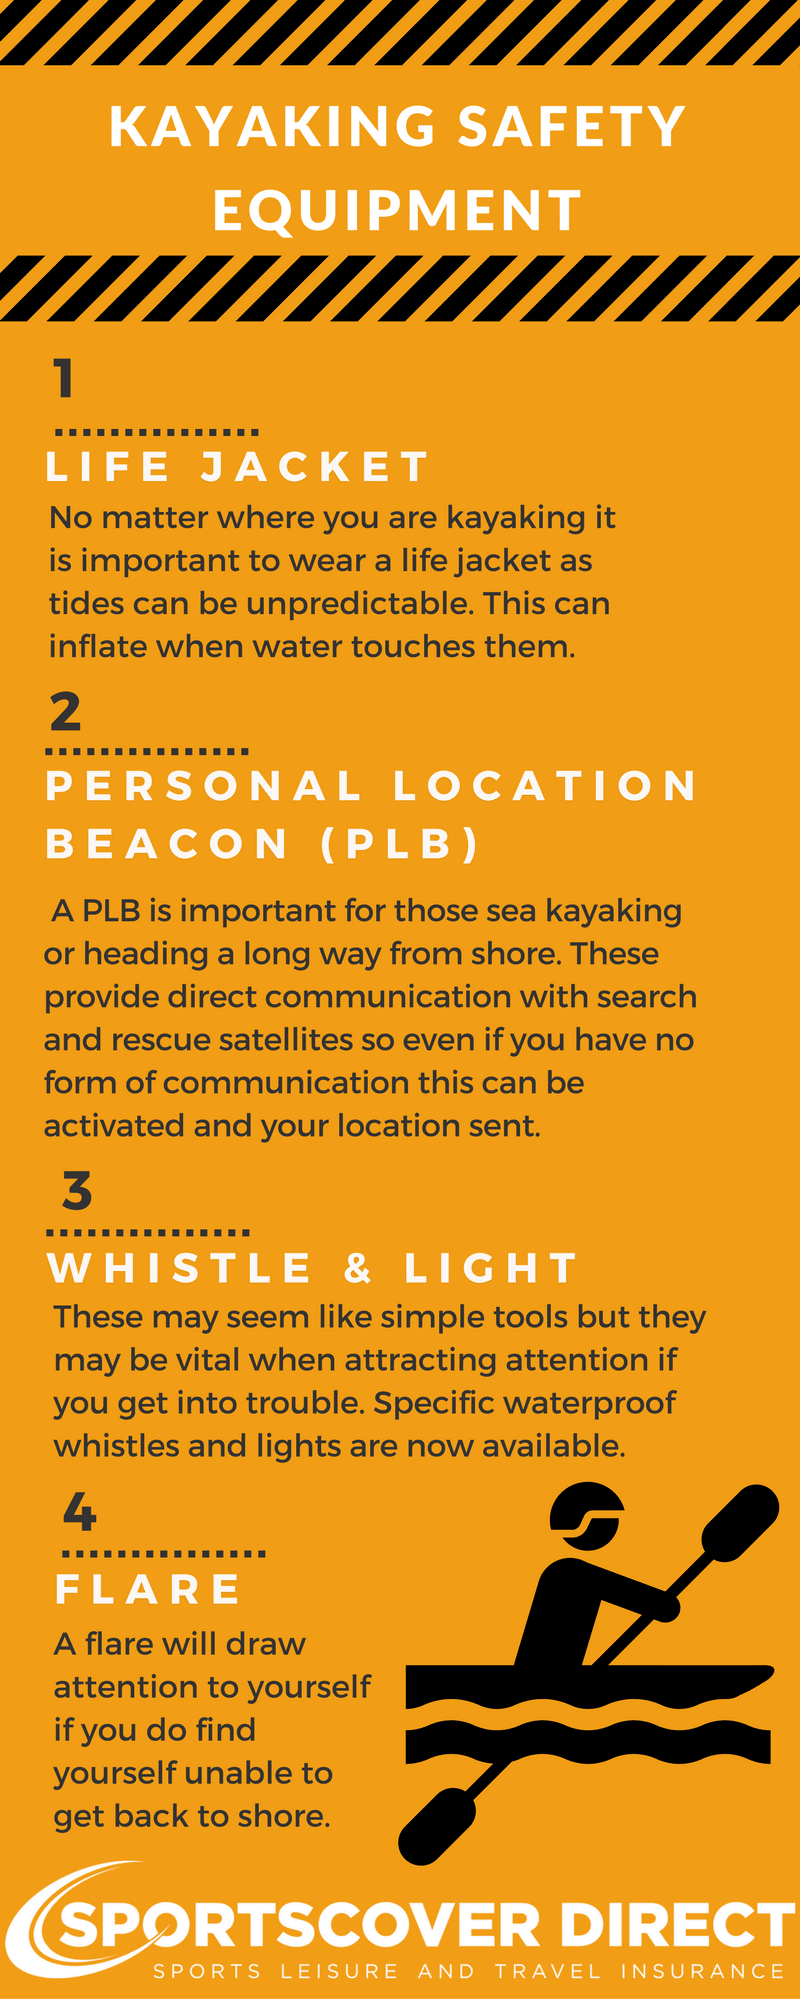 Kayaking Safety Equipment Infographic